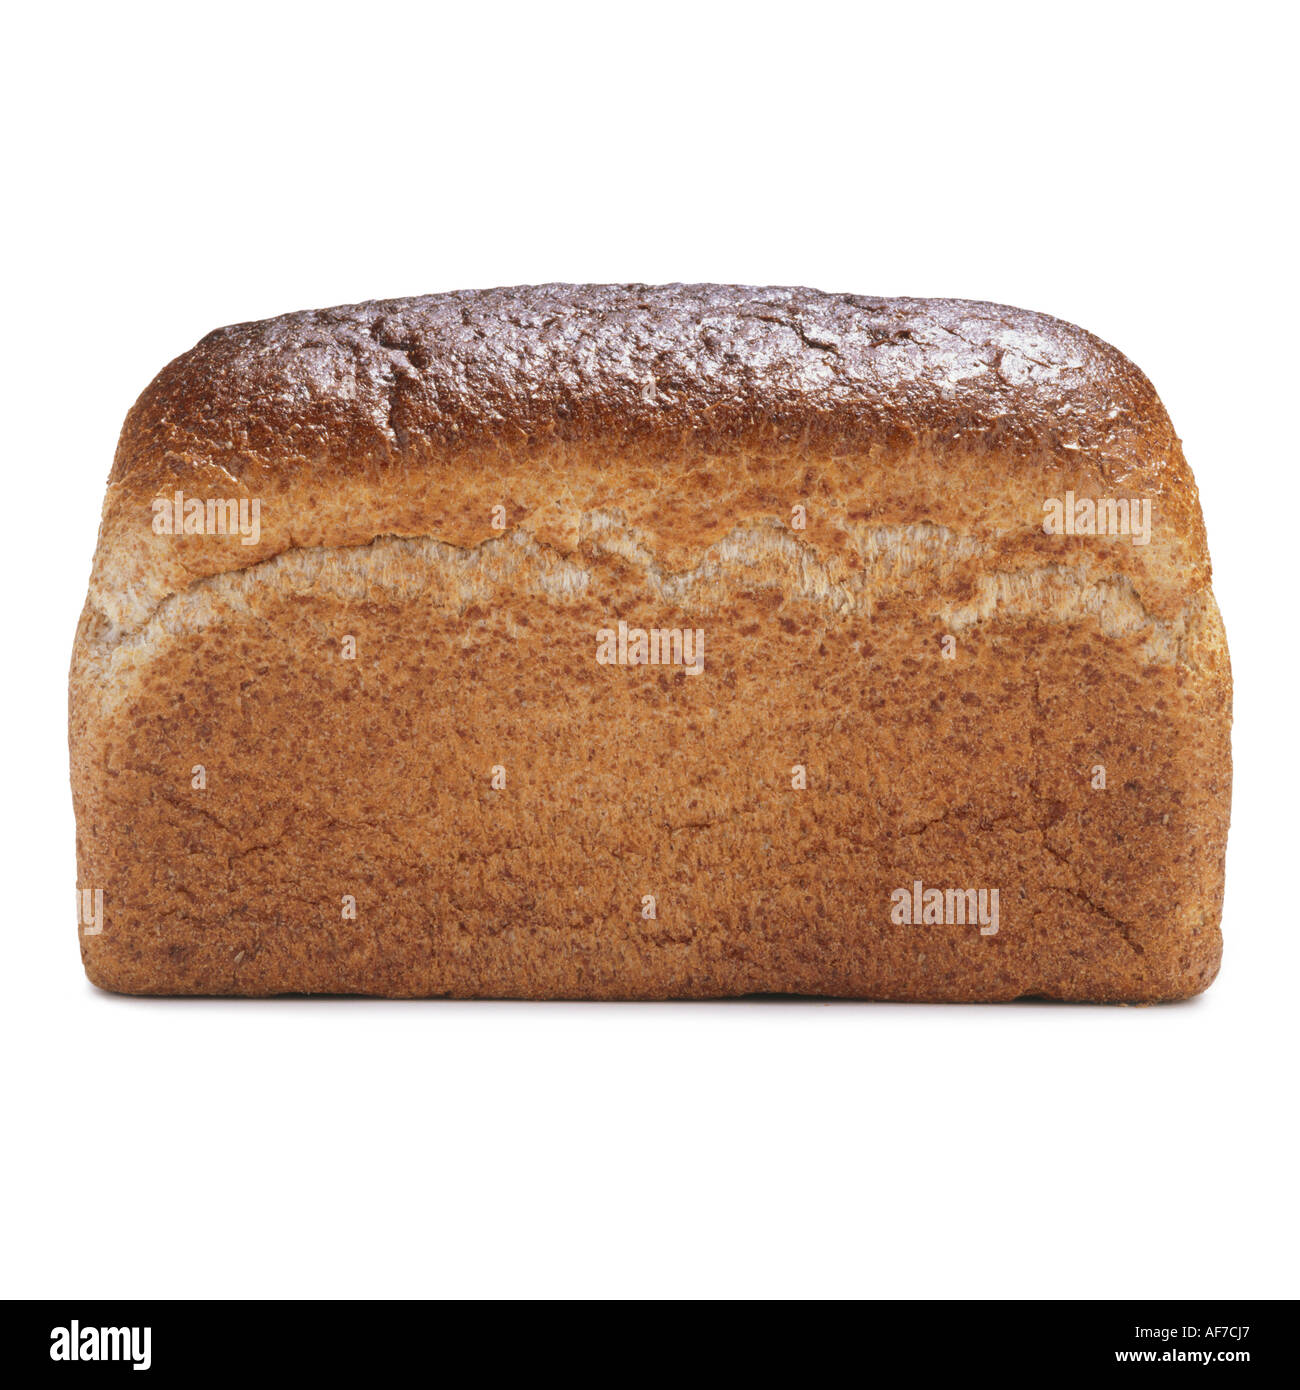 A loaf of bread - Stock Image